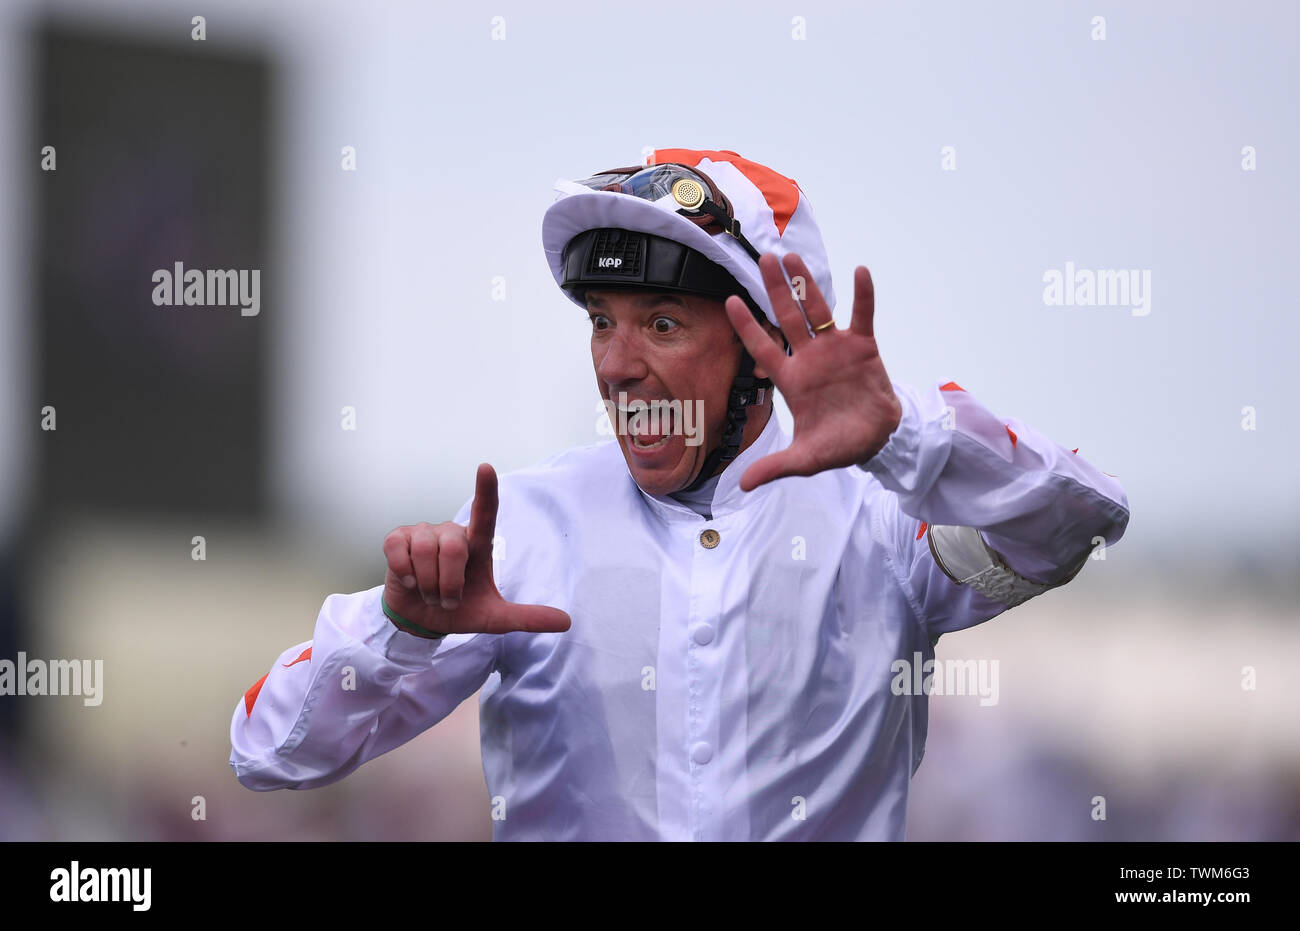 Ascot Racecourse, Windsor, UK. 21st June, 2019. Royal Ascot Horse racing; Race 3; Commonwealth Cup; Advertise Ridden By Frankie Dettori Trained By M Meade wins the Commonwealth Cup and Frankie Dettori celebrates 7 wins at Ascot Credit: Action Plus Sports/Alamy Live News Stock Photo